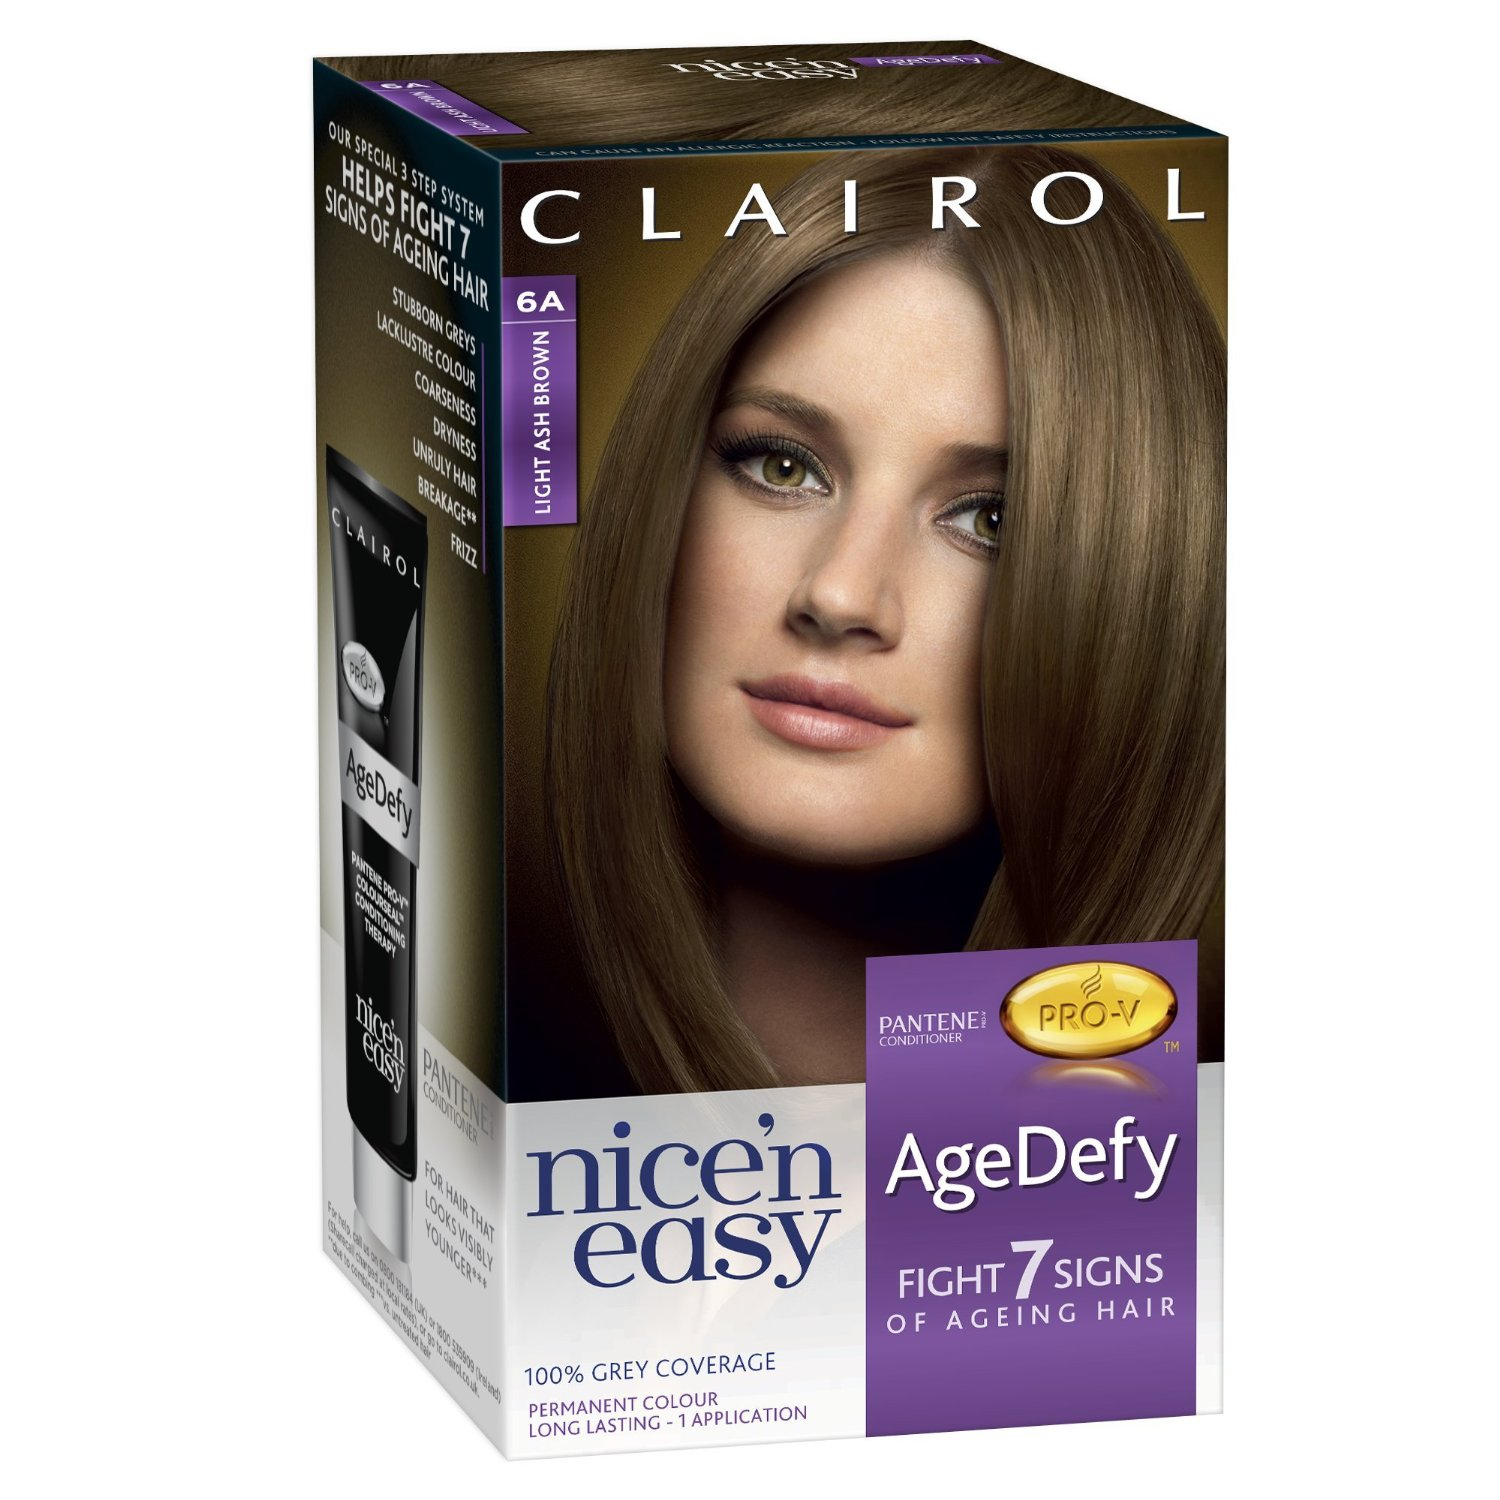 Reviews Of Clairol Age Defy Hair Colour | Dark Brown Hairs